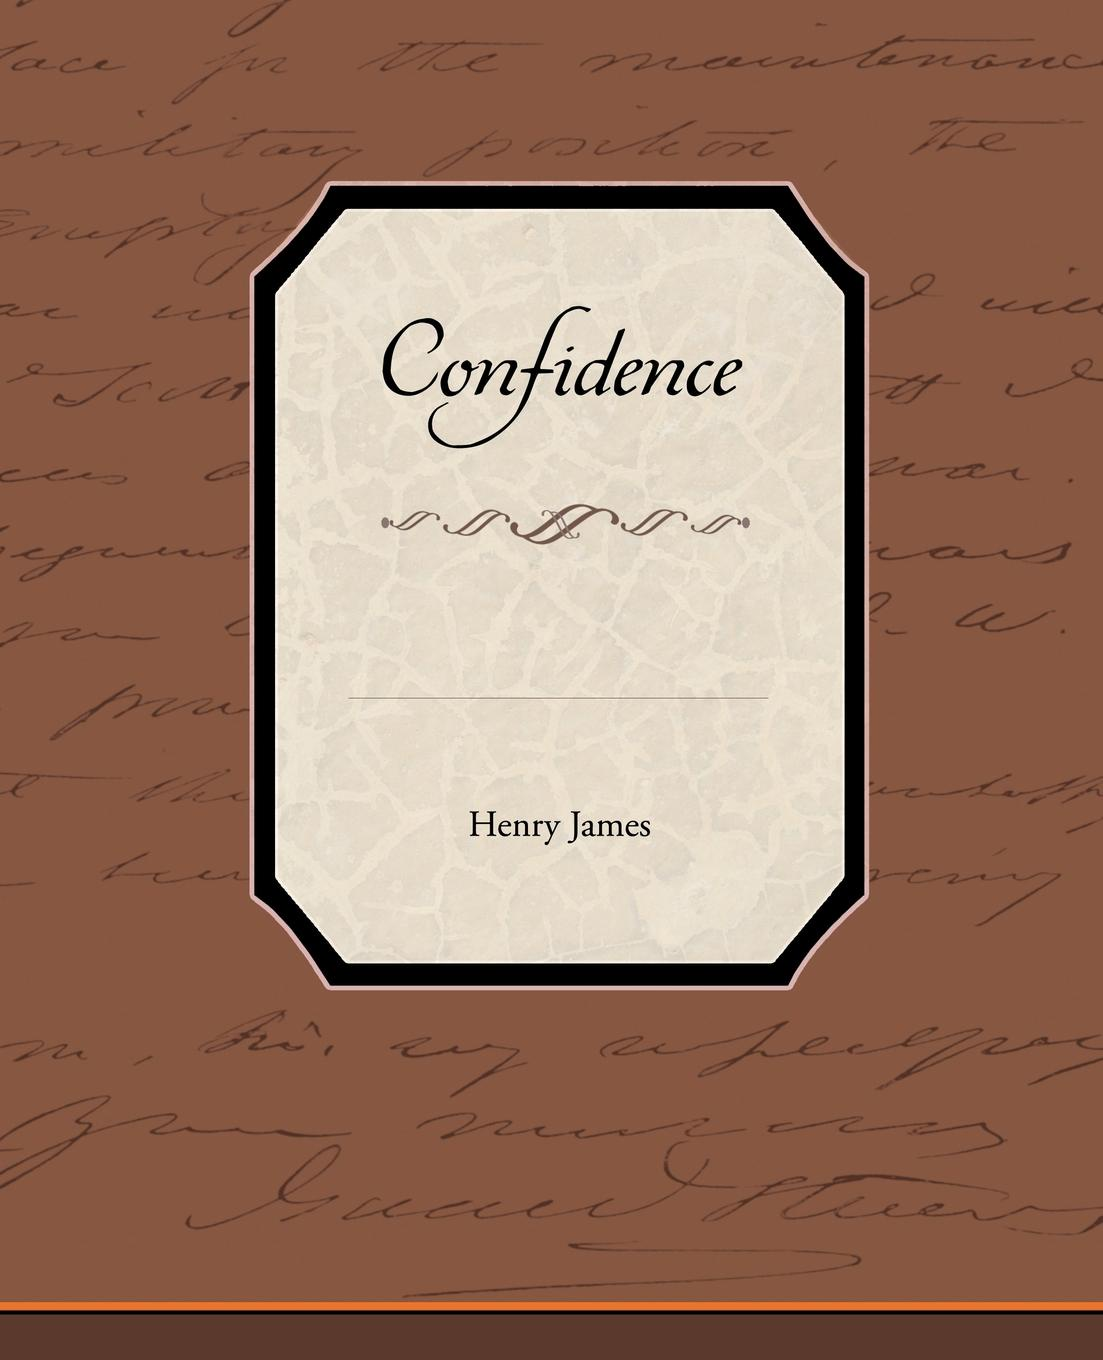 Henry Jr. James Confidence henry james confidence